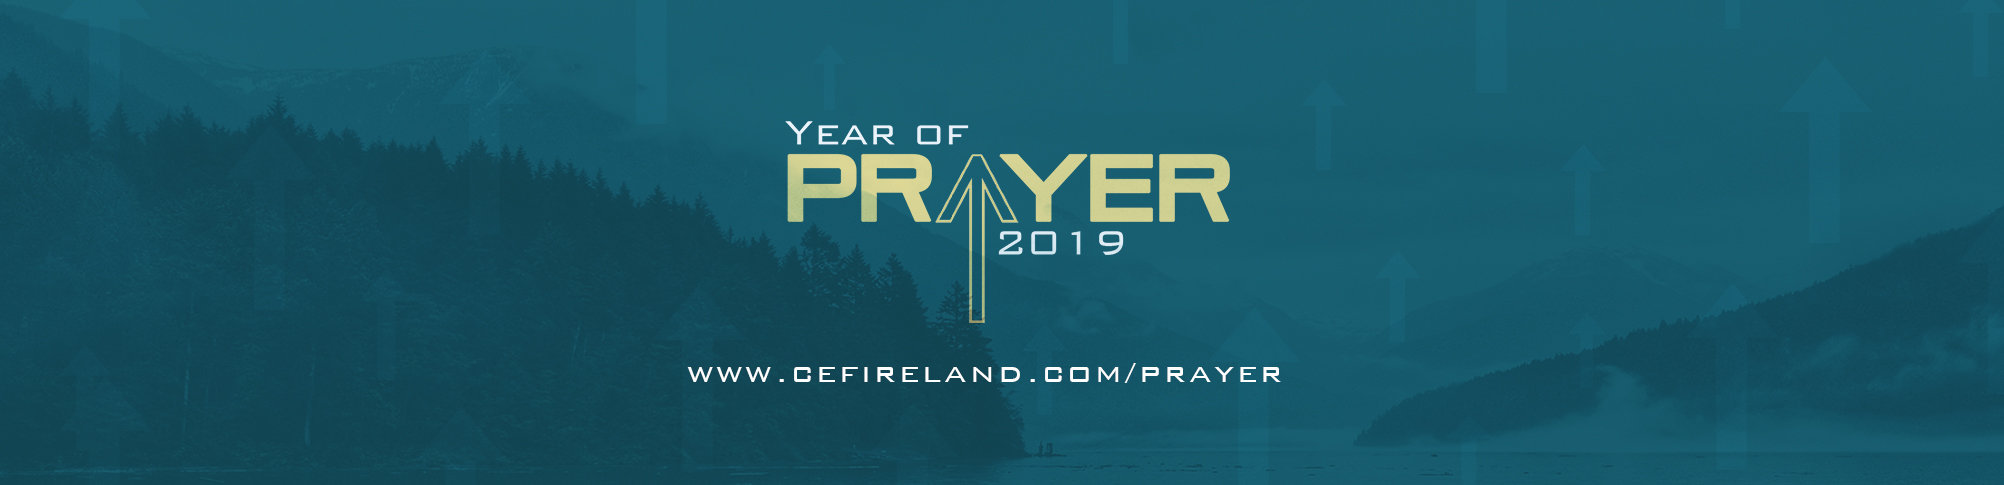 Year-of-Prayer-Banner-Website